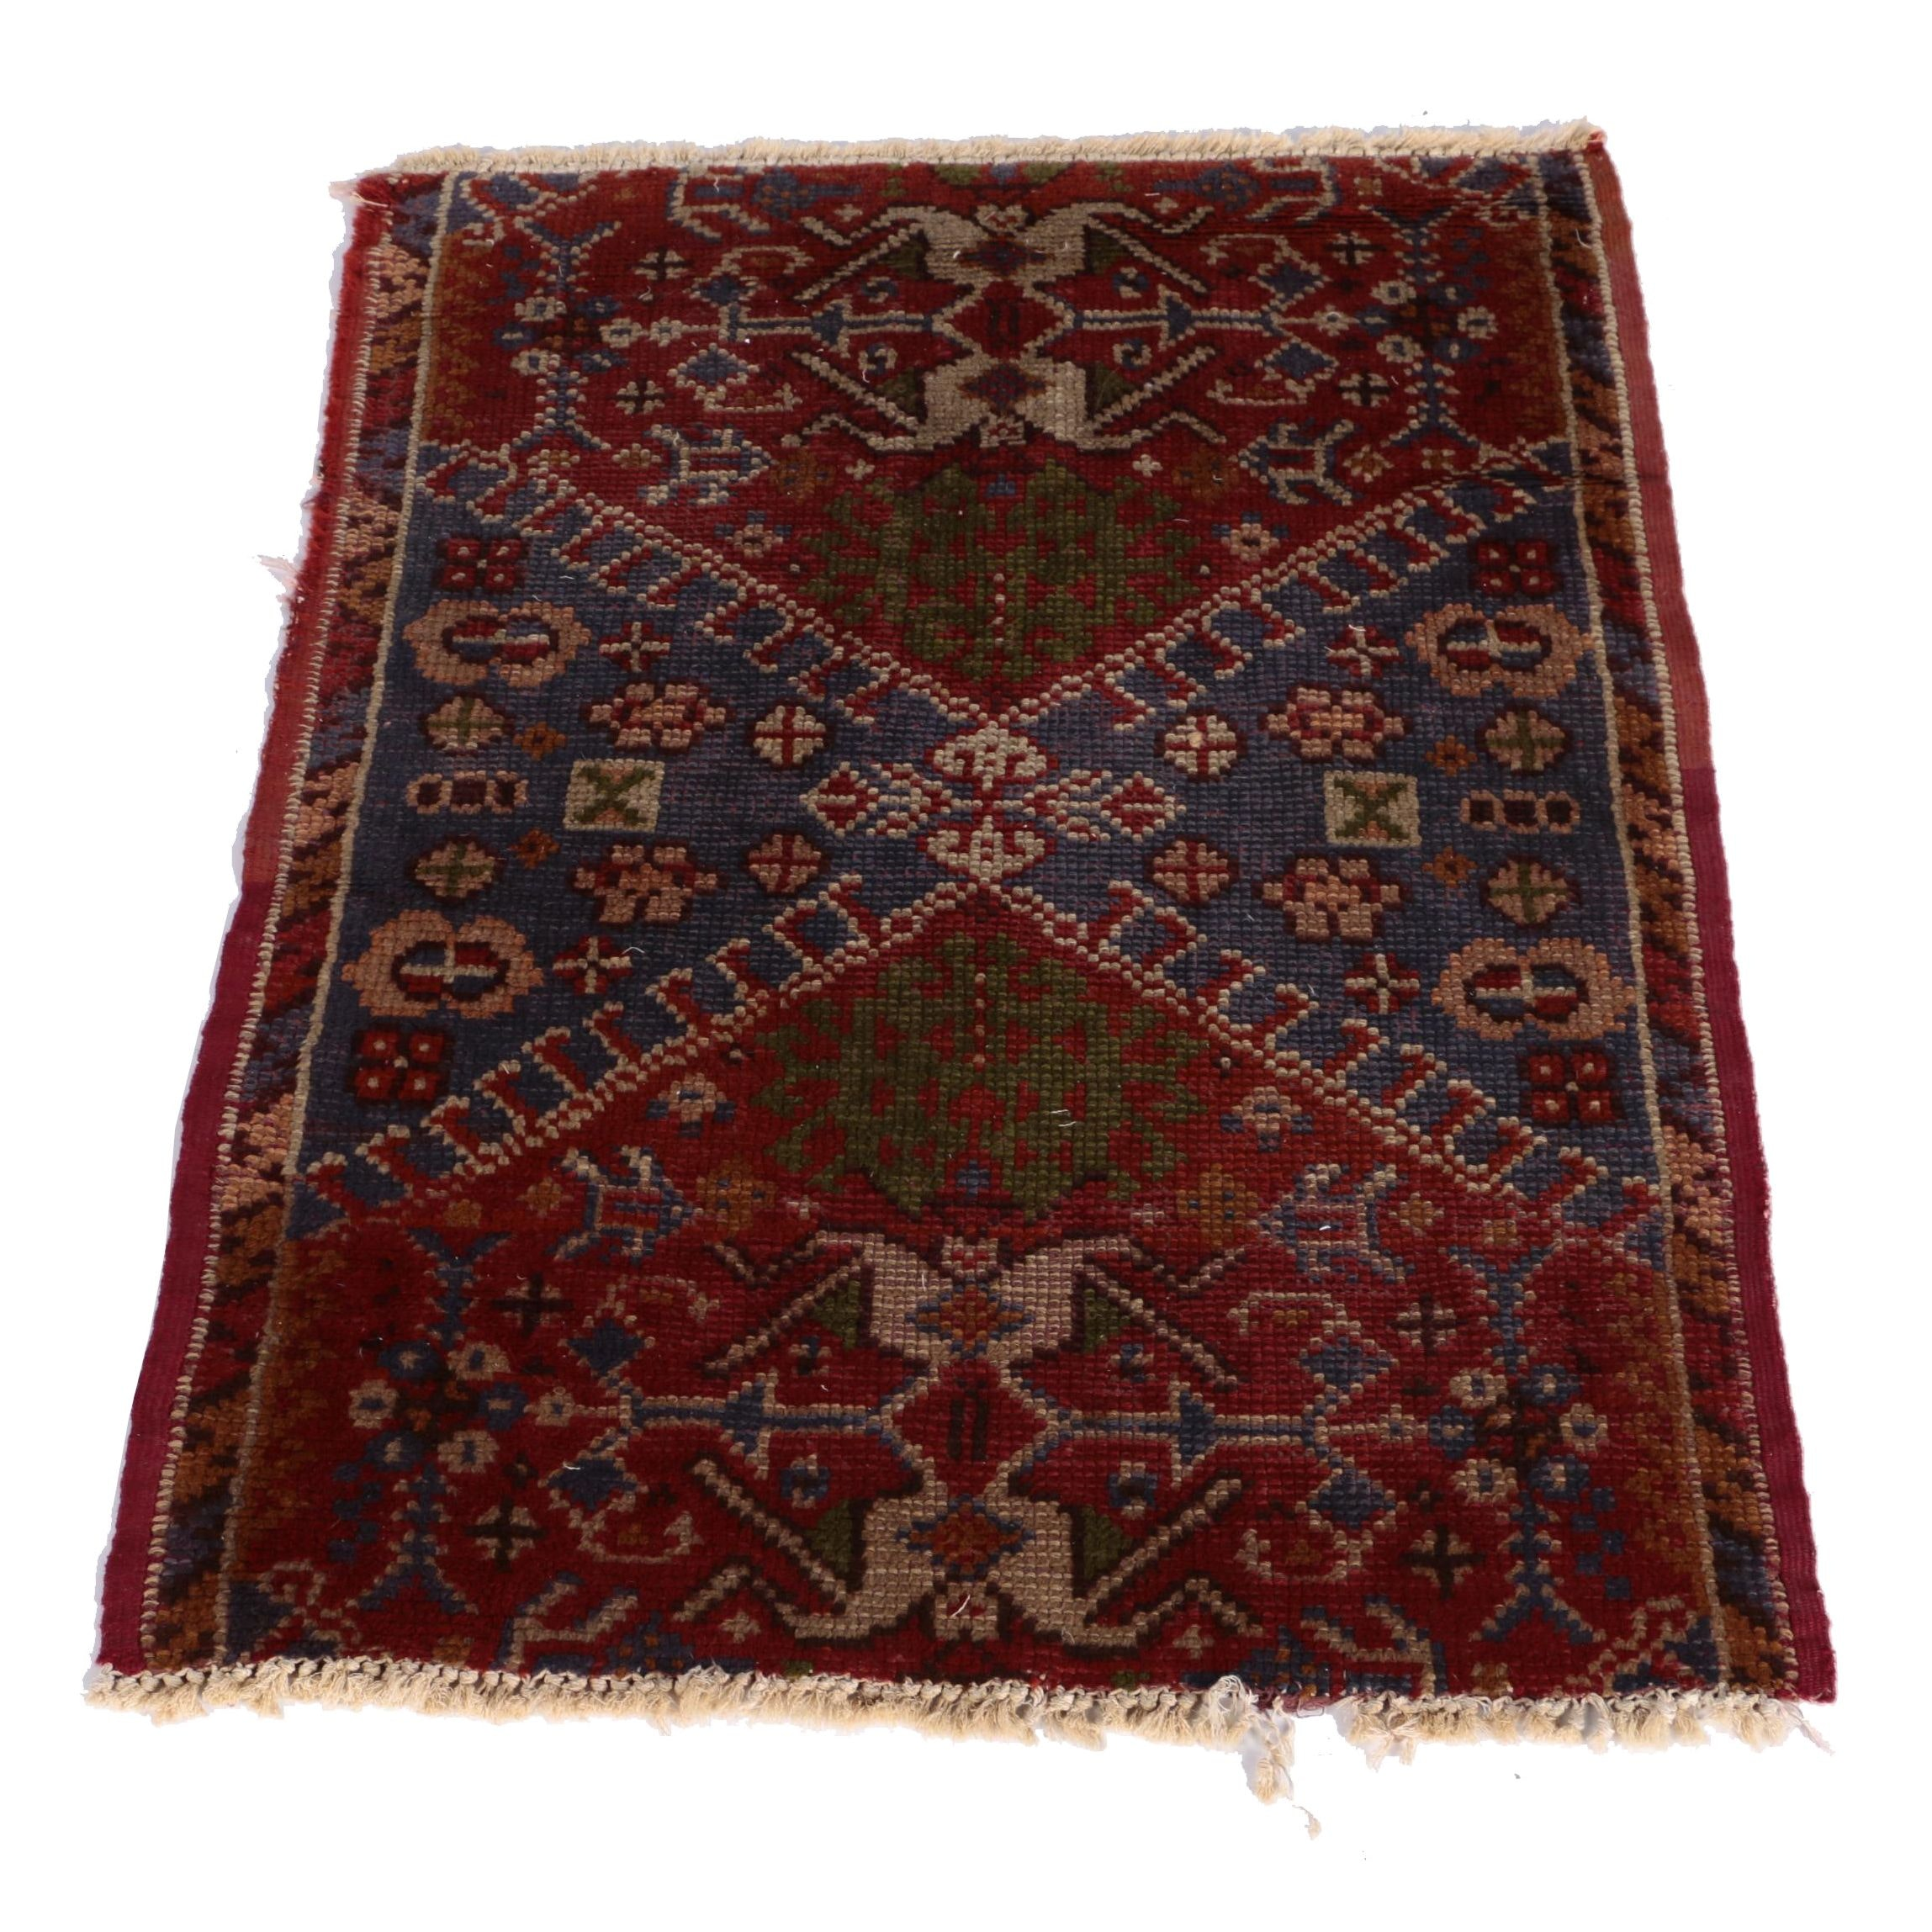 Semi-Antique Handwoven Anatolian Accent Rug